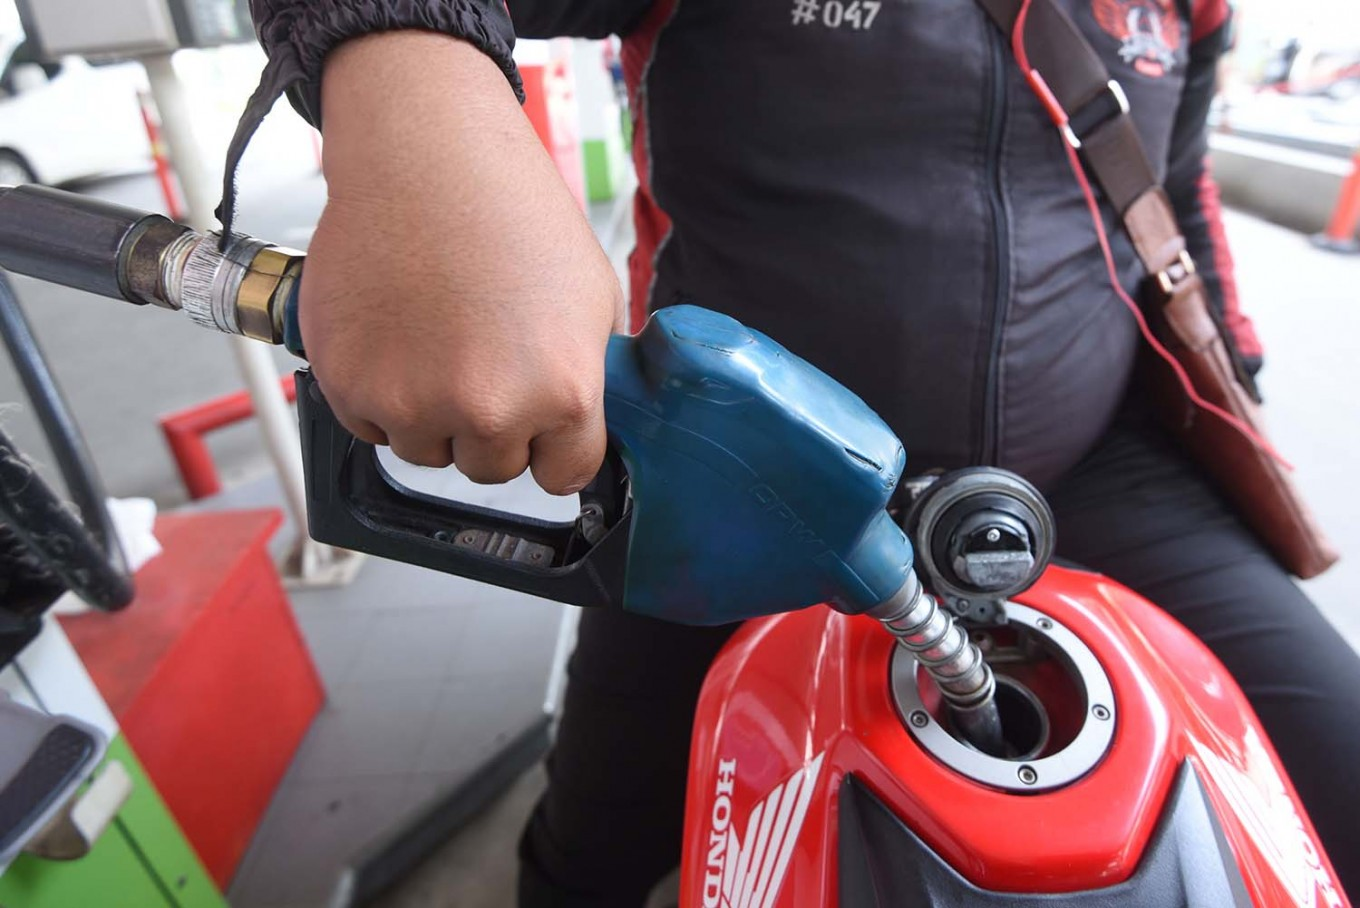 Lawmaker calls for fuel subsidy for Pertamax